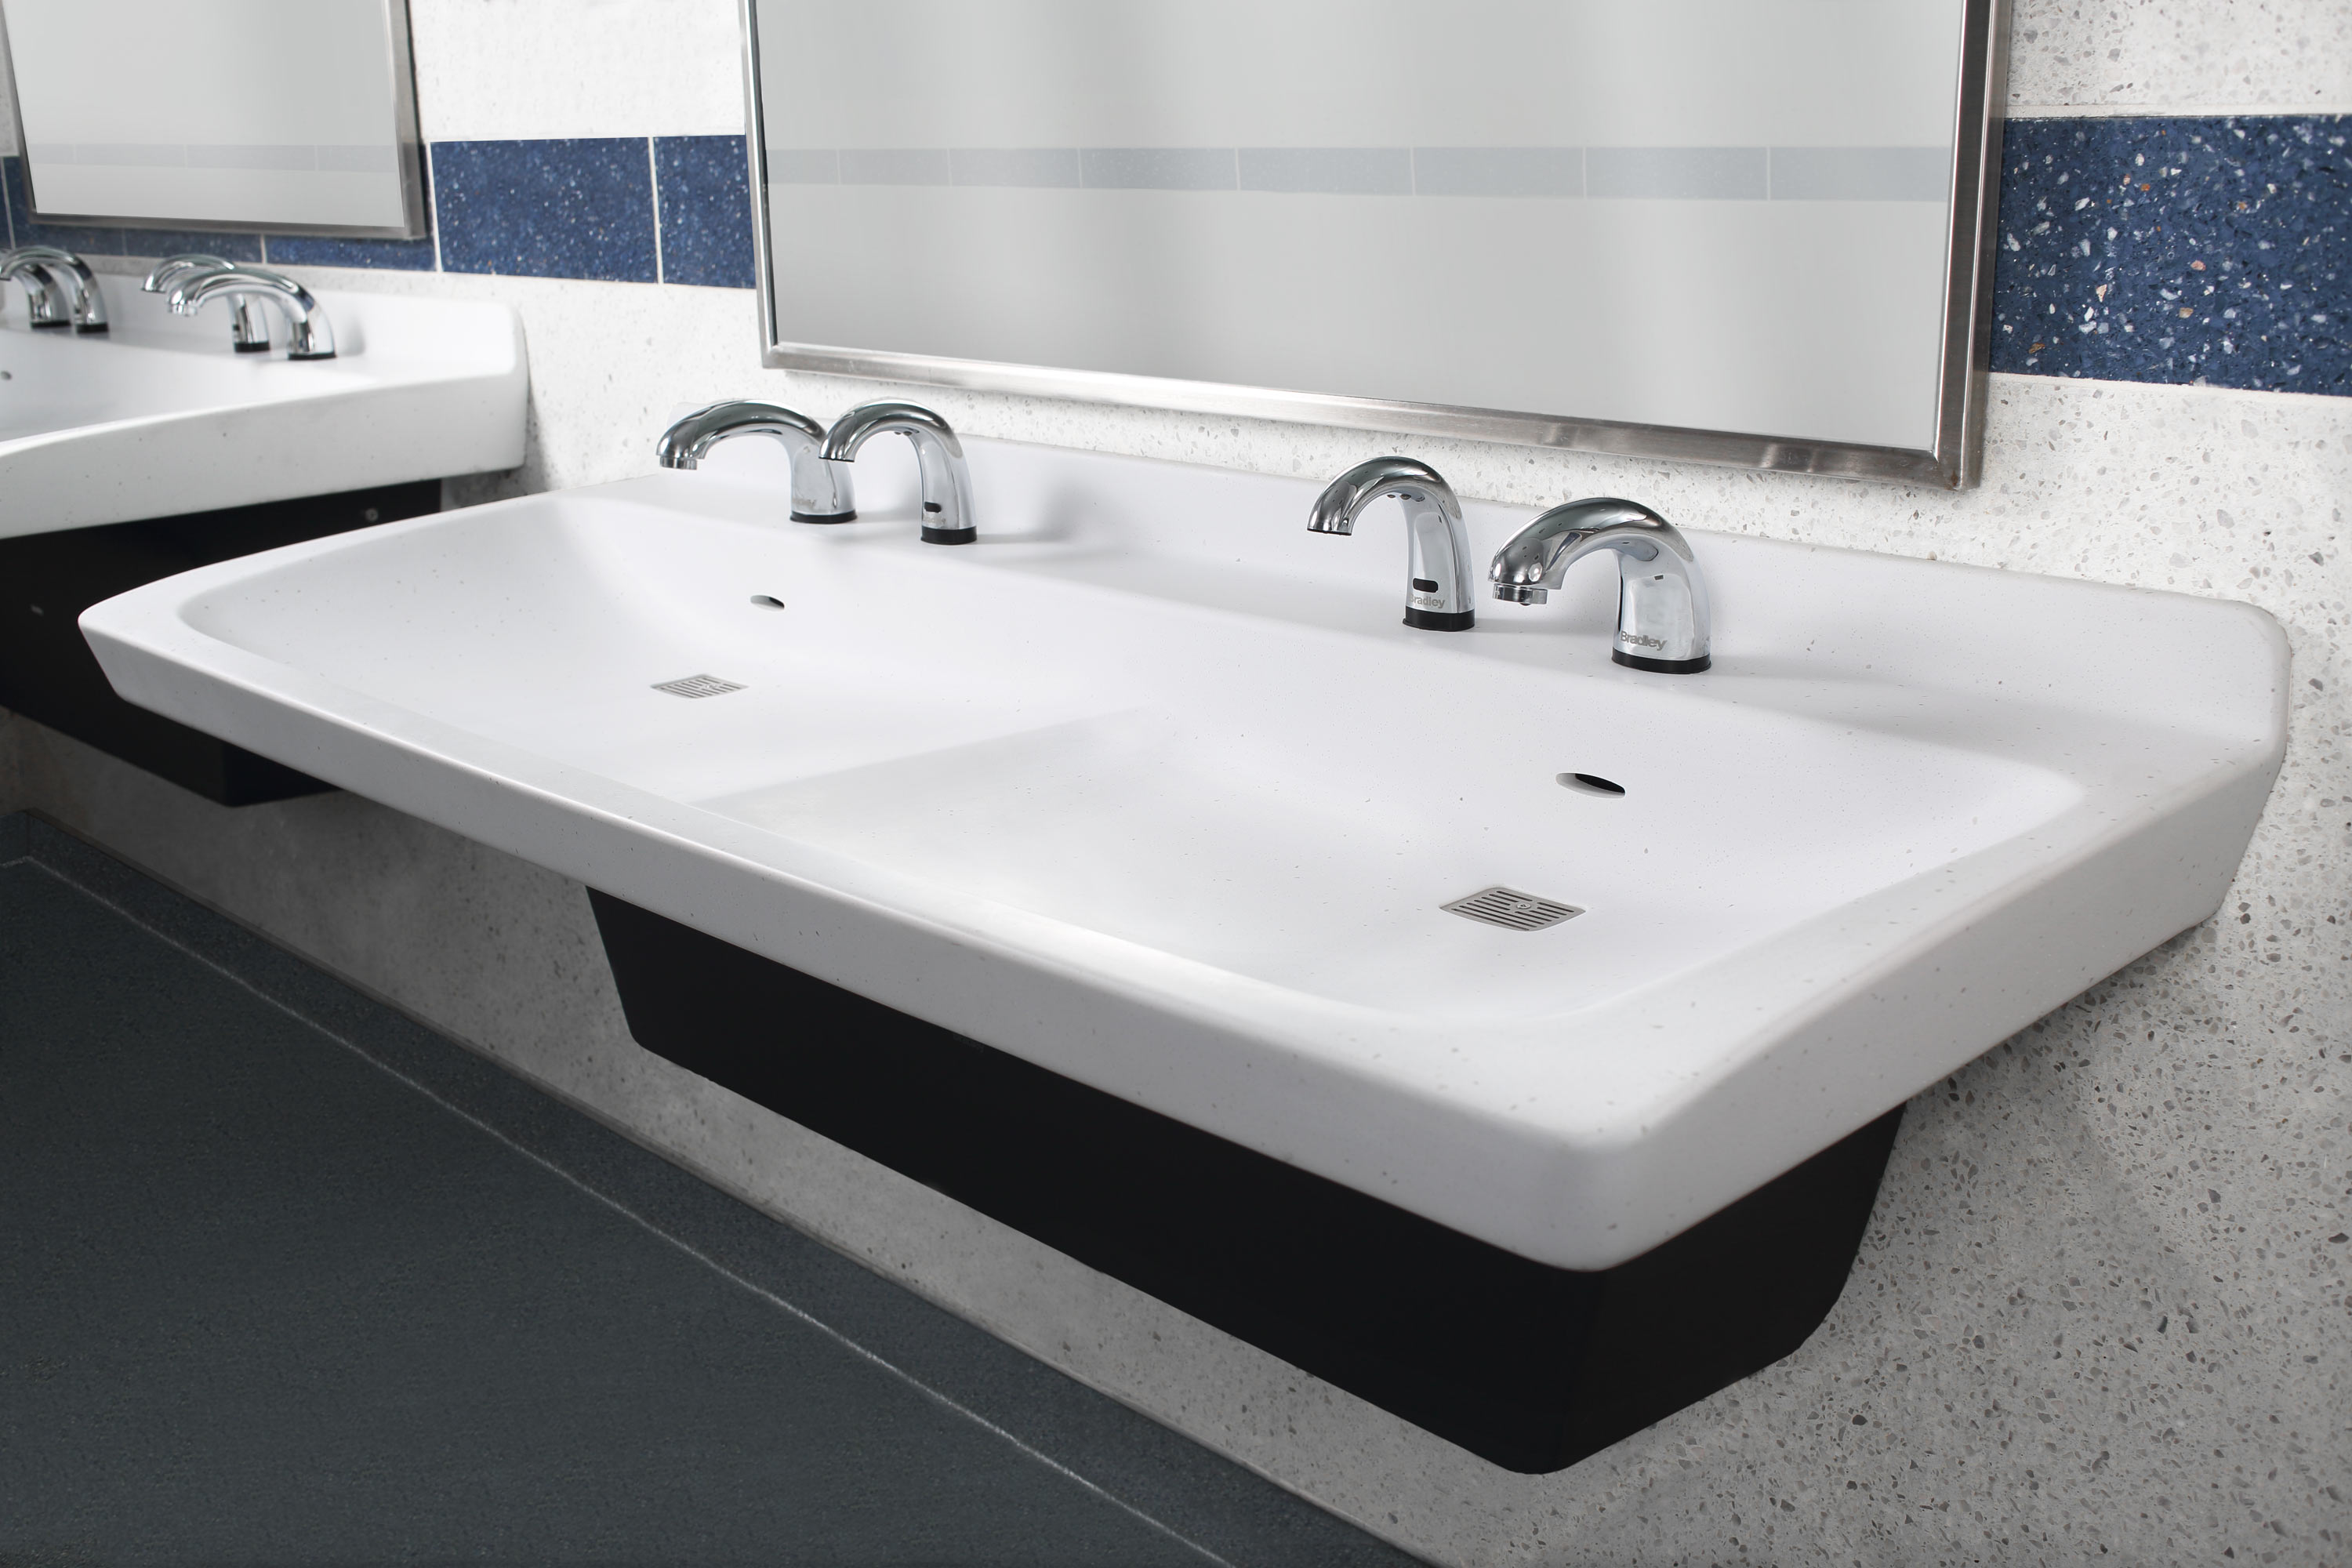 Exceptional Commercial Bathroom Sink Made Of Natural Quartz Surface